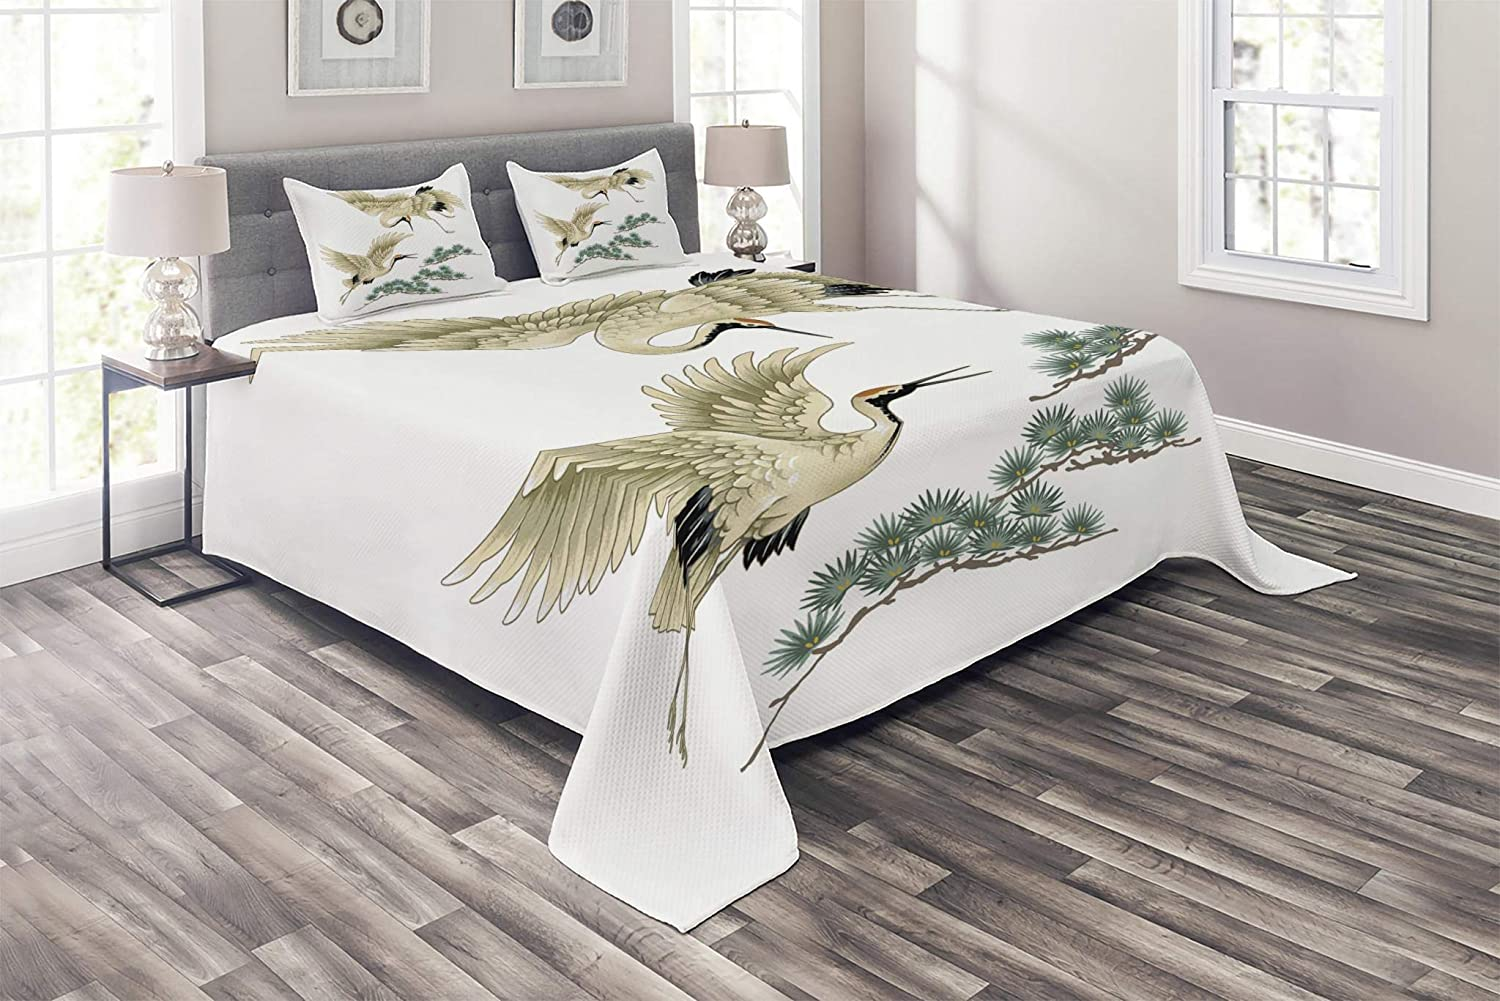 Lunarable Bird Coverlet Set Queen Size, Two Japanese Cranes Flying Traditional Painting Style Far Eastern Illustration, 3 Piece Decorative Quilted Bedspread Set with 2 Pillow Shams, Ivory Green Black